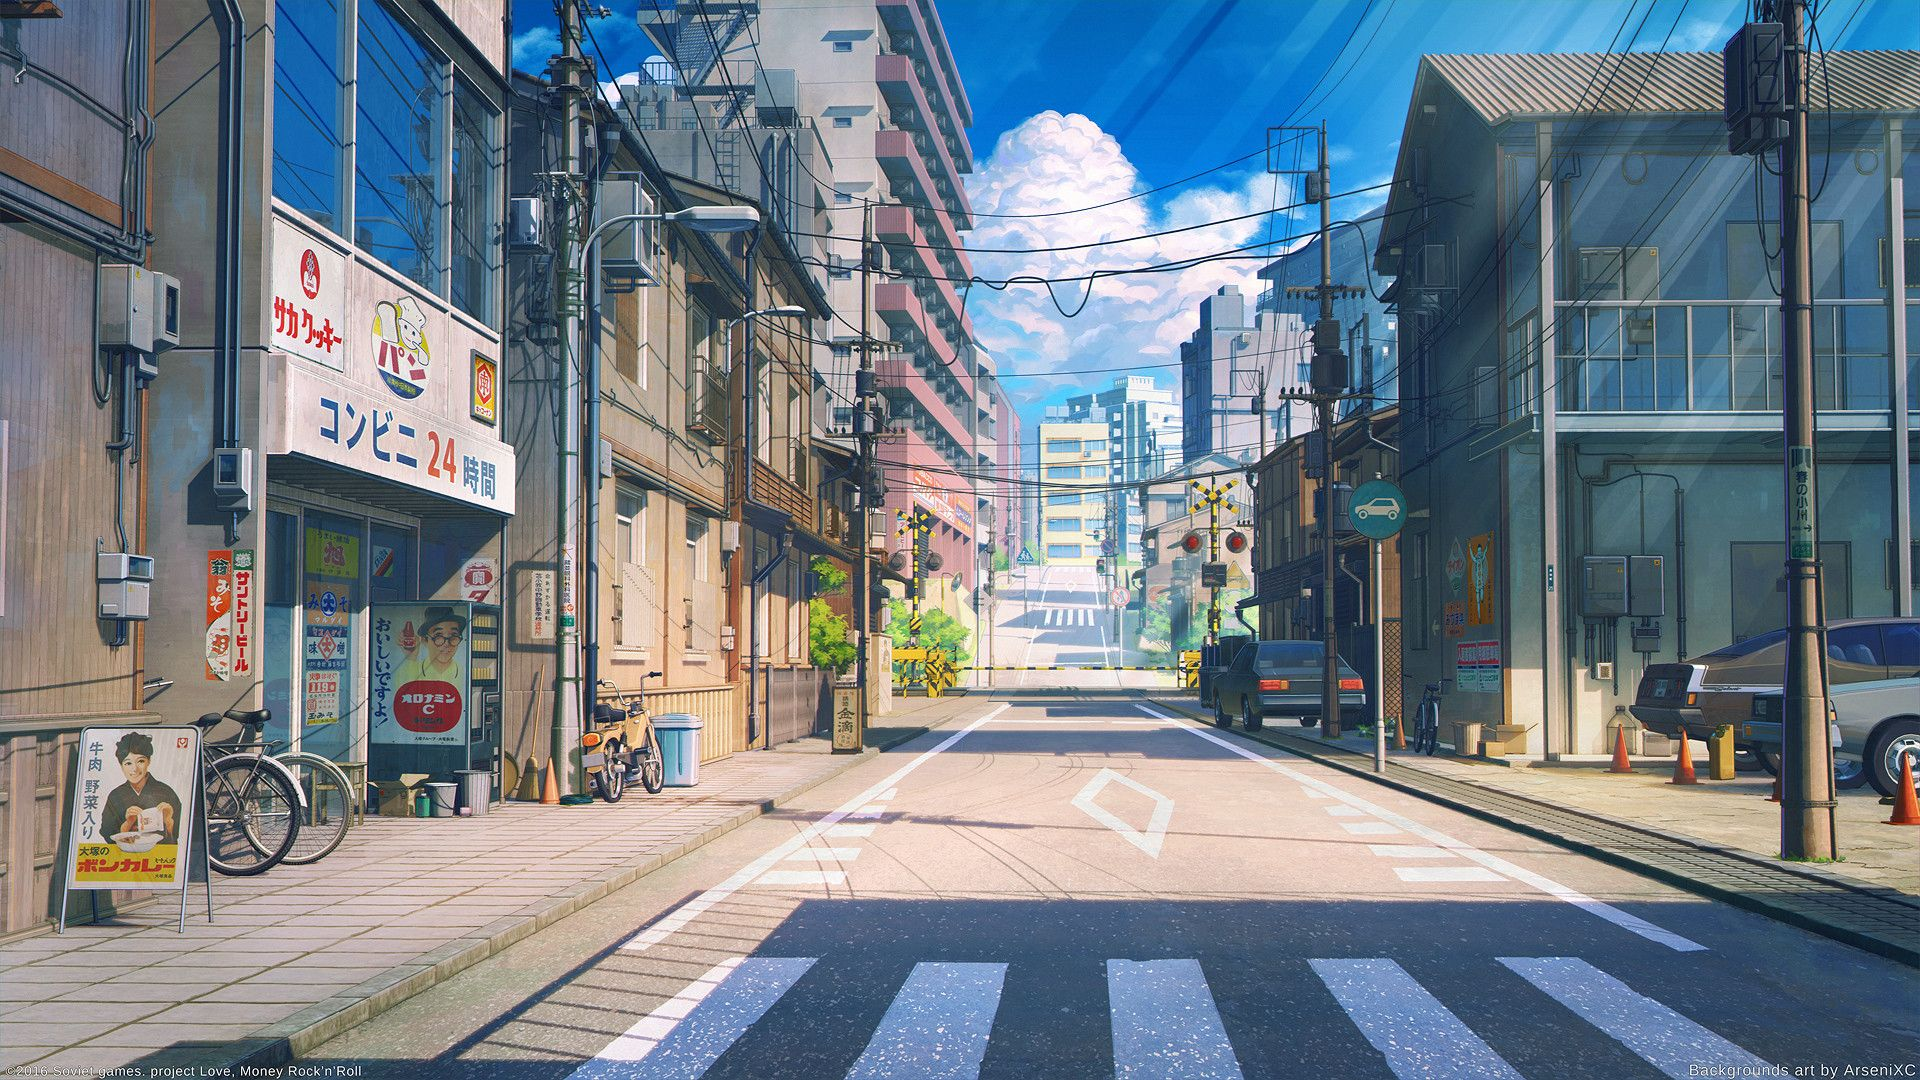 Japan In The 1980s Anime Scenery Wallpaper Anime City Anime Background